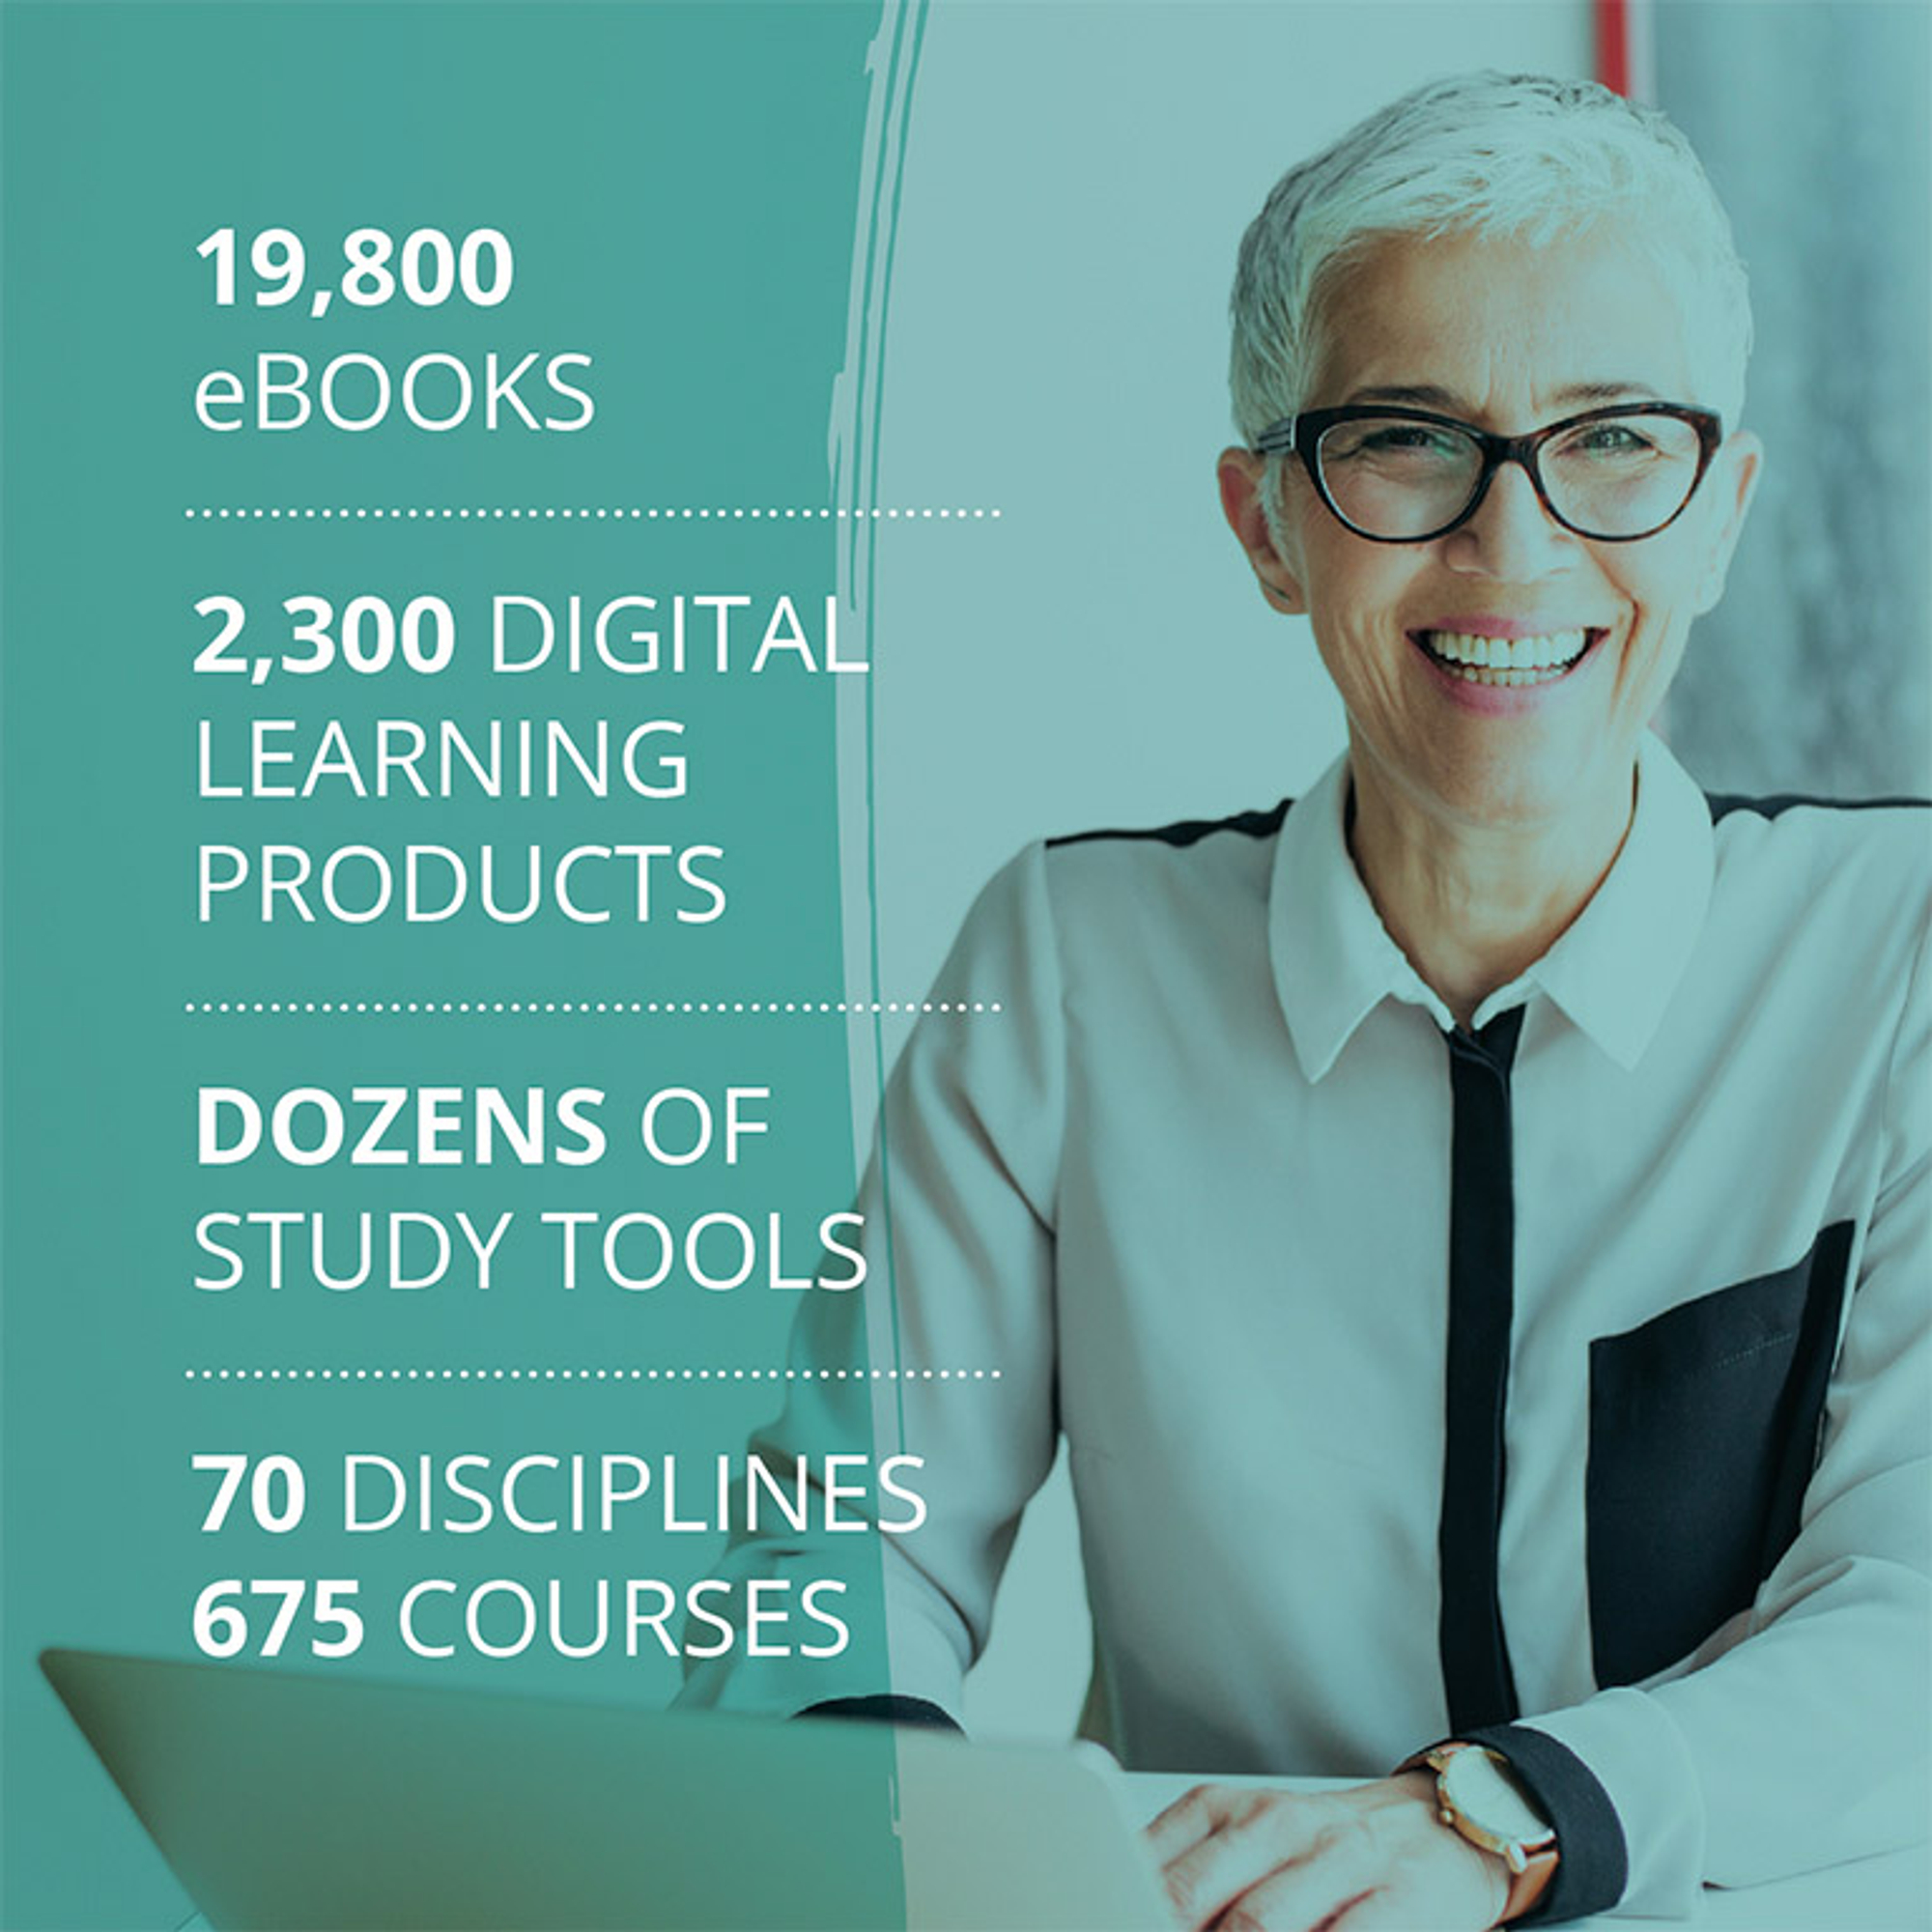 eBooks, Digital Learning Products, Study Tools - 70 Disciplines - 675 Courses